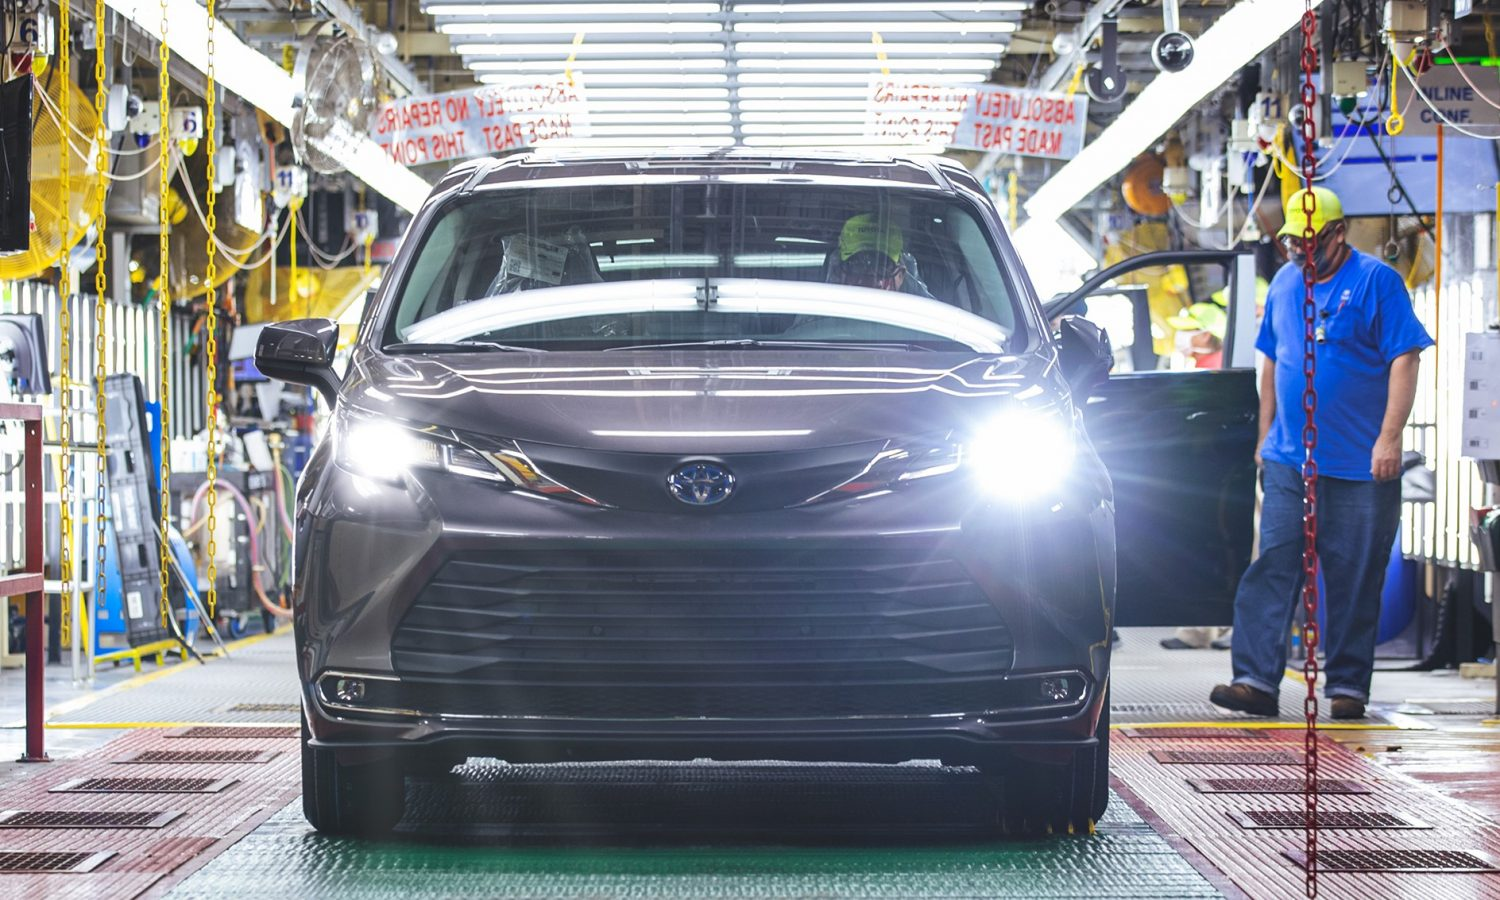 Toyota Indiana: Trailblazing with Cutting-Edge Innovation to Assemble Some of Toyota's Most-Loved Vehicles